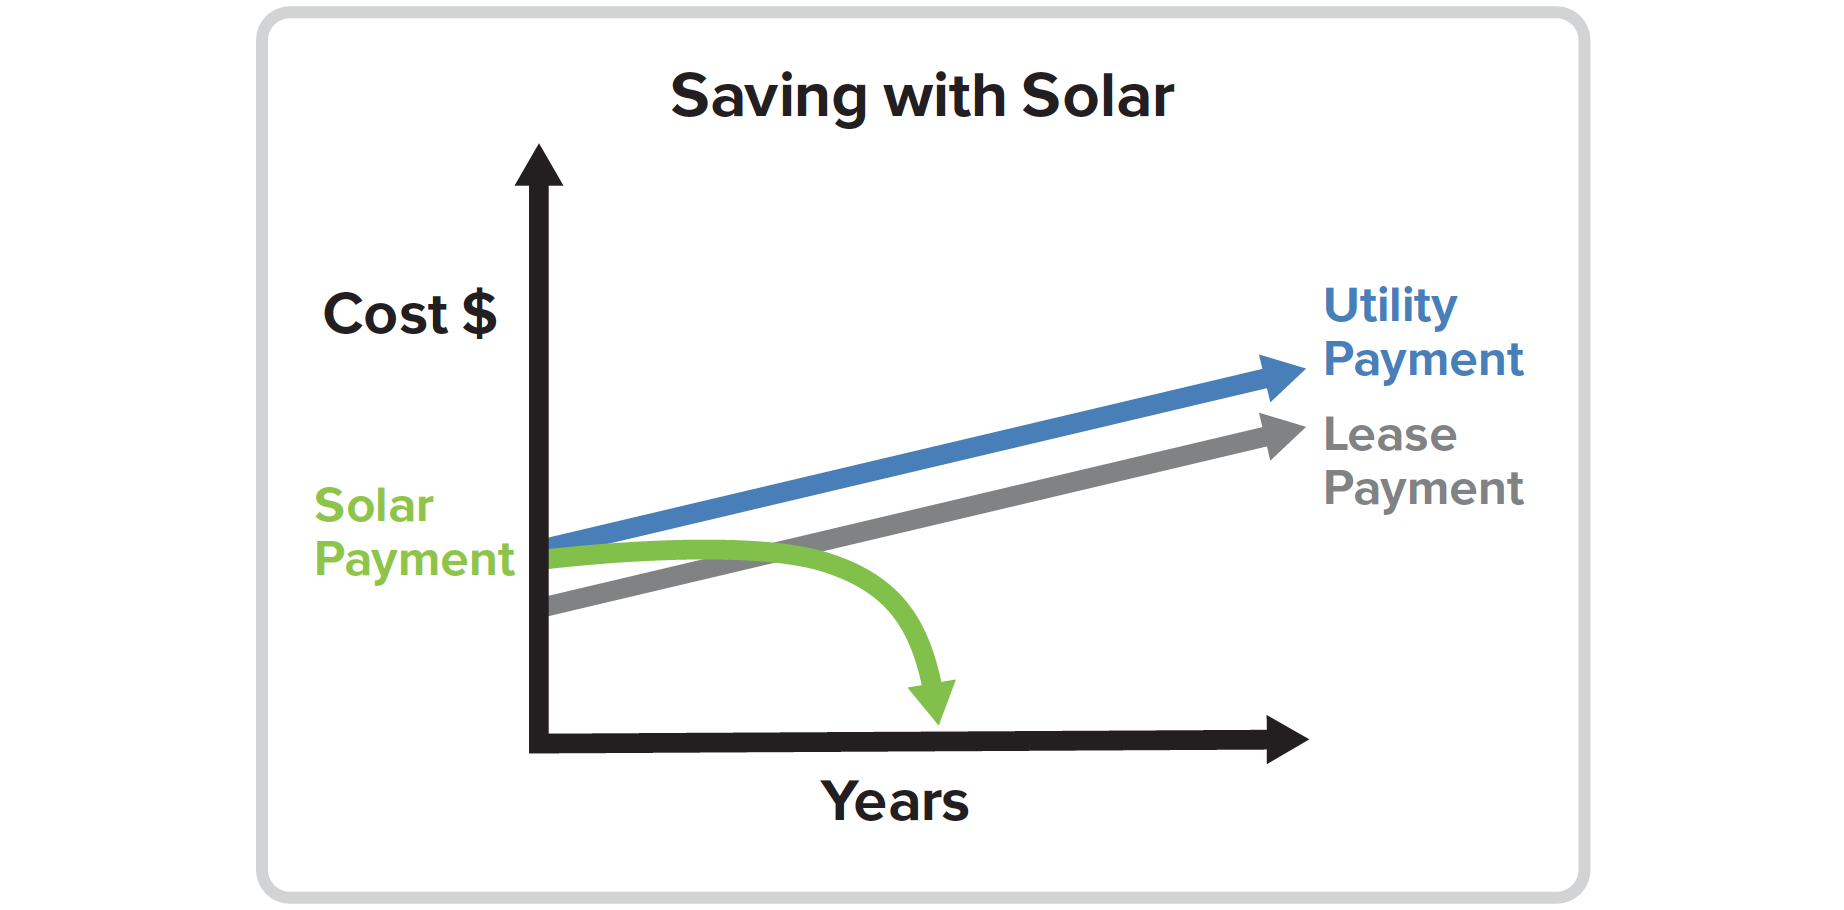 Leasing or buying solar in Vermont